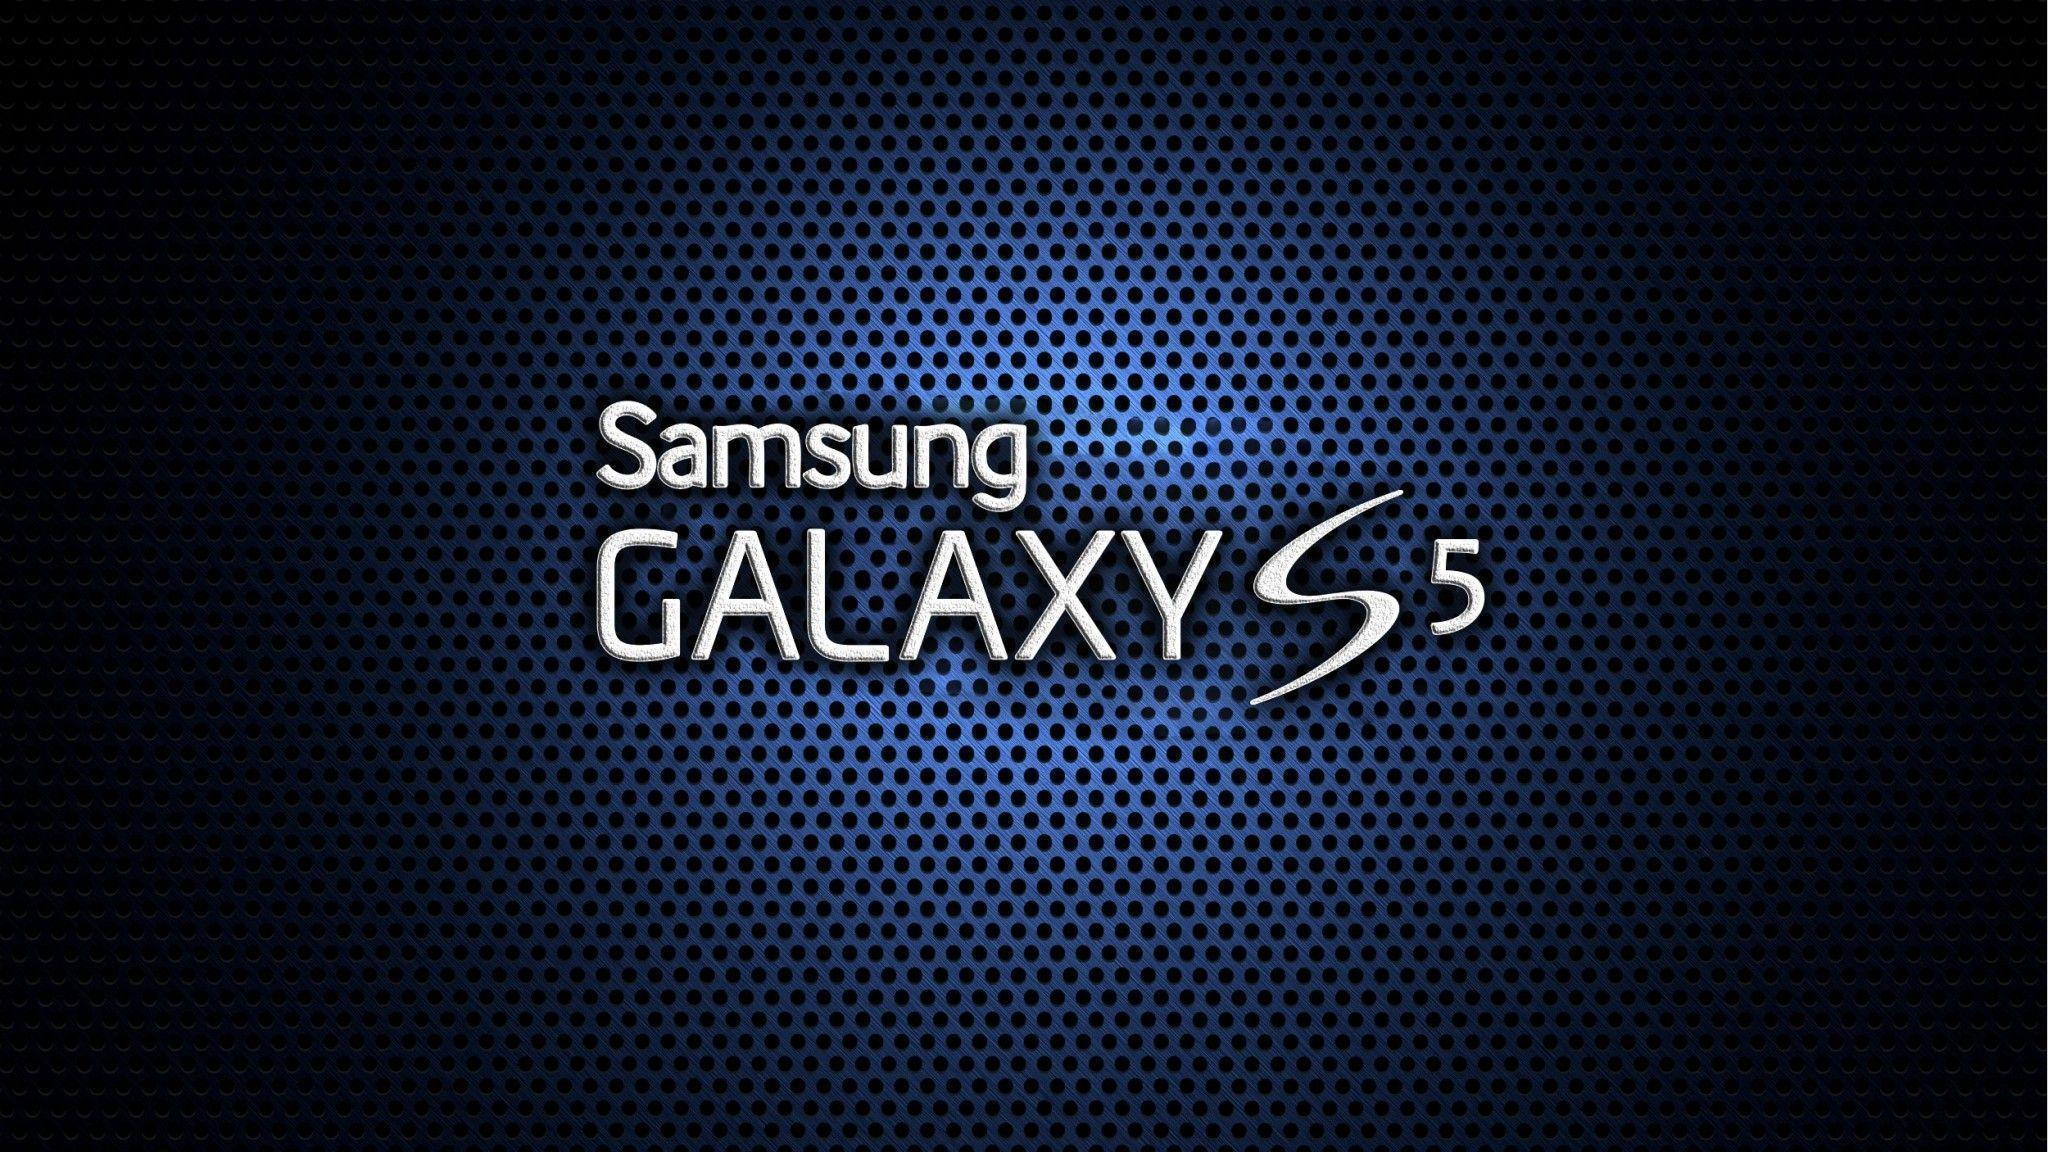 Samsung Galaxy S5 Logo Wallpaper Wide or HD | Computers Wallpapers